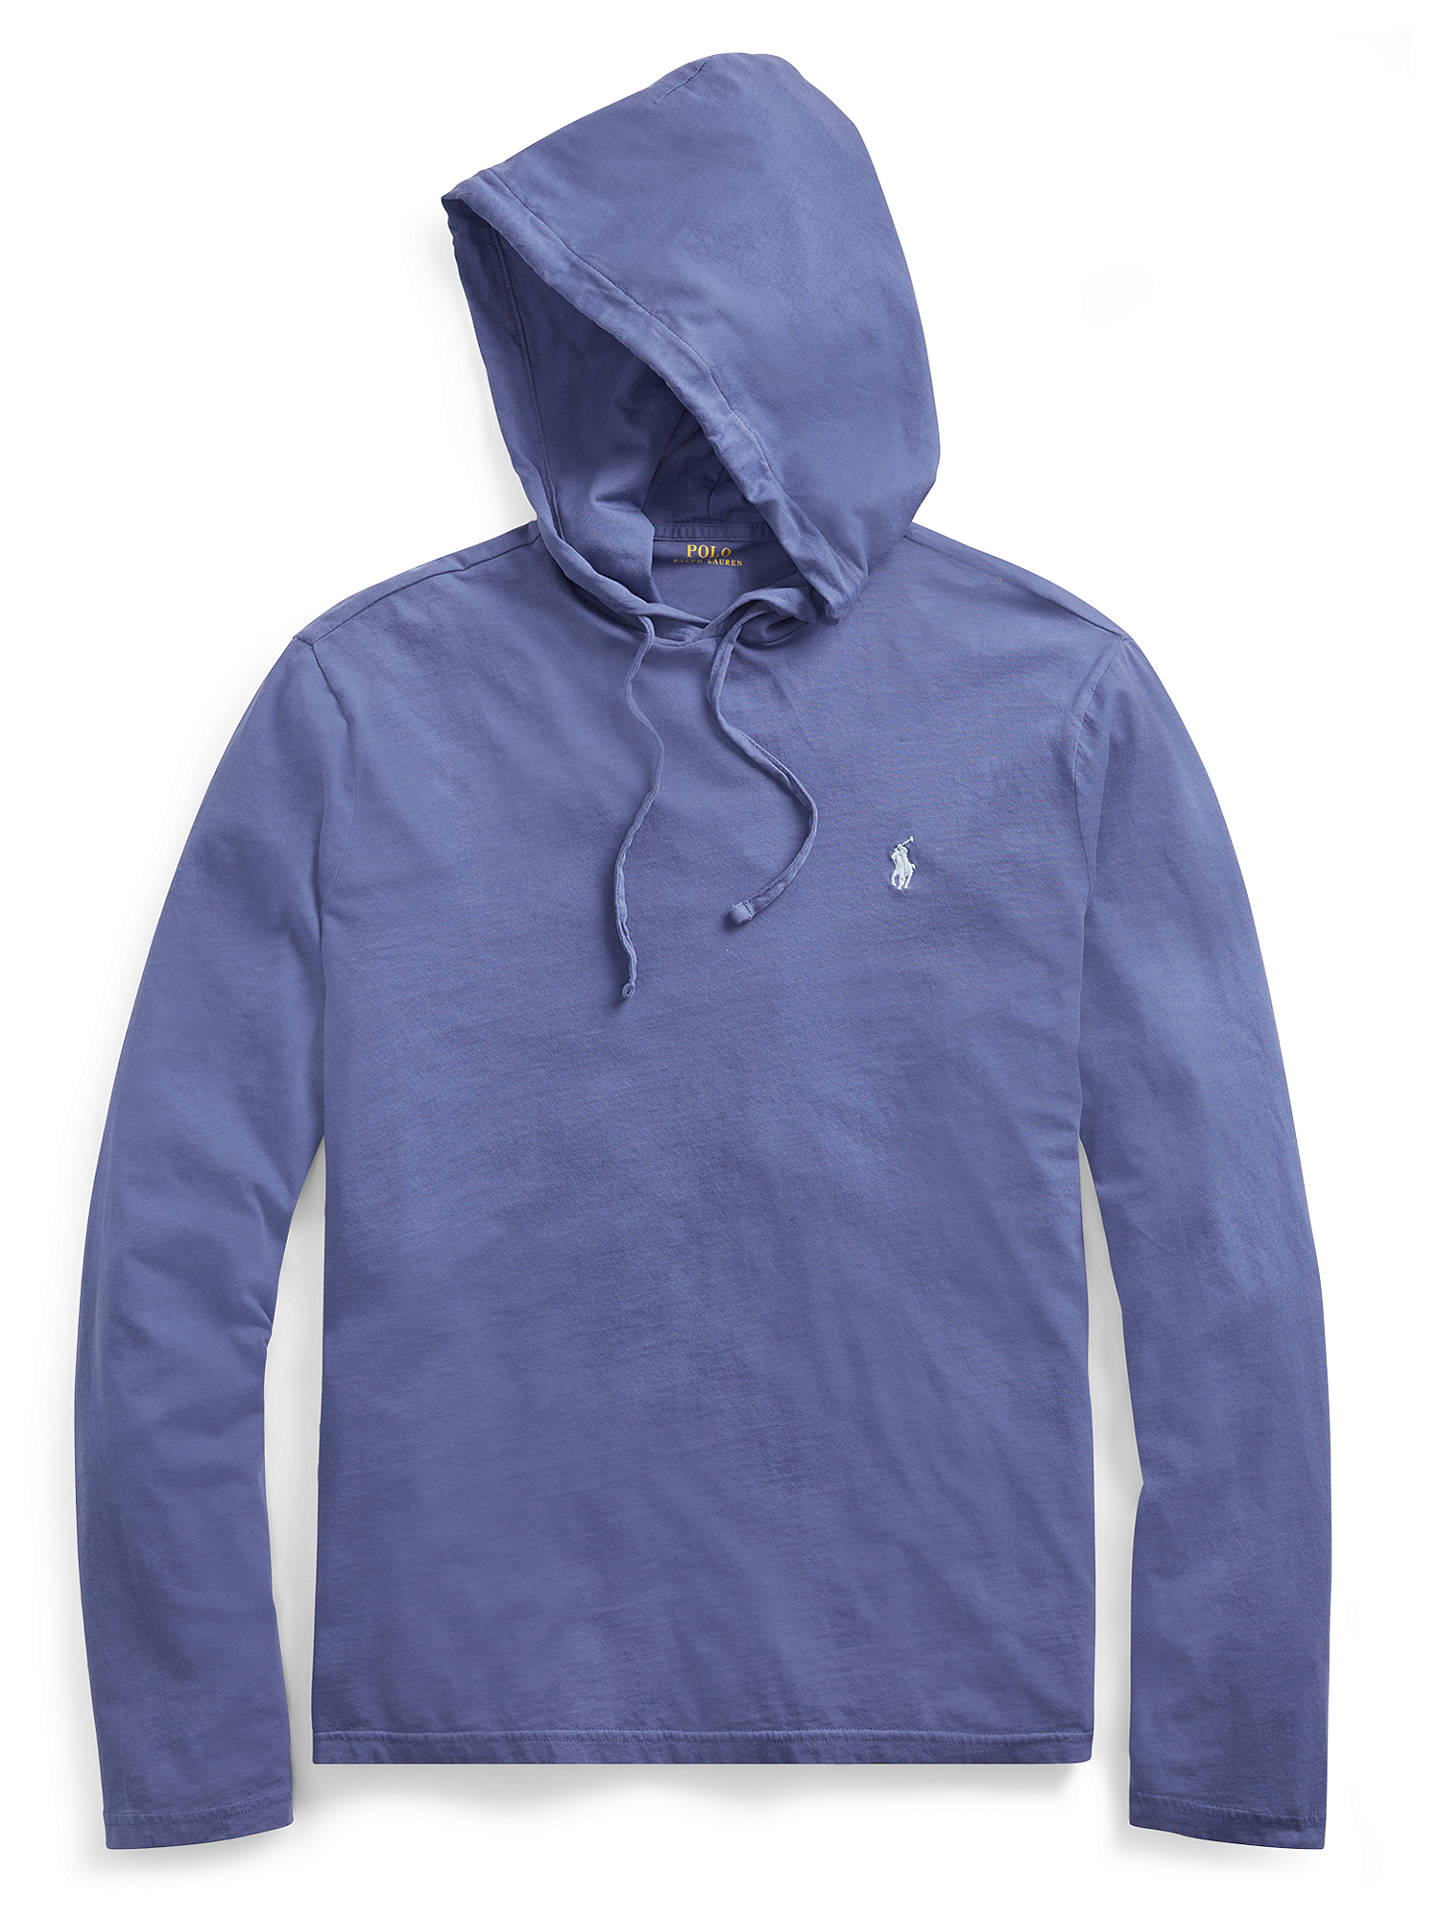 9153e4ea0 ... Buy Polo Ralph Lauren Long Sleeve Hooded T-Shirt, Haven Blue, S Online